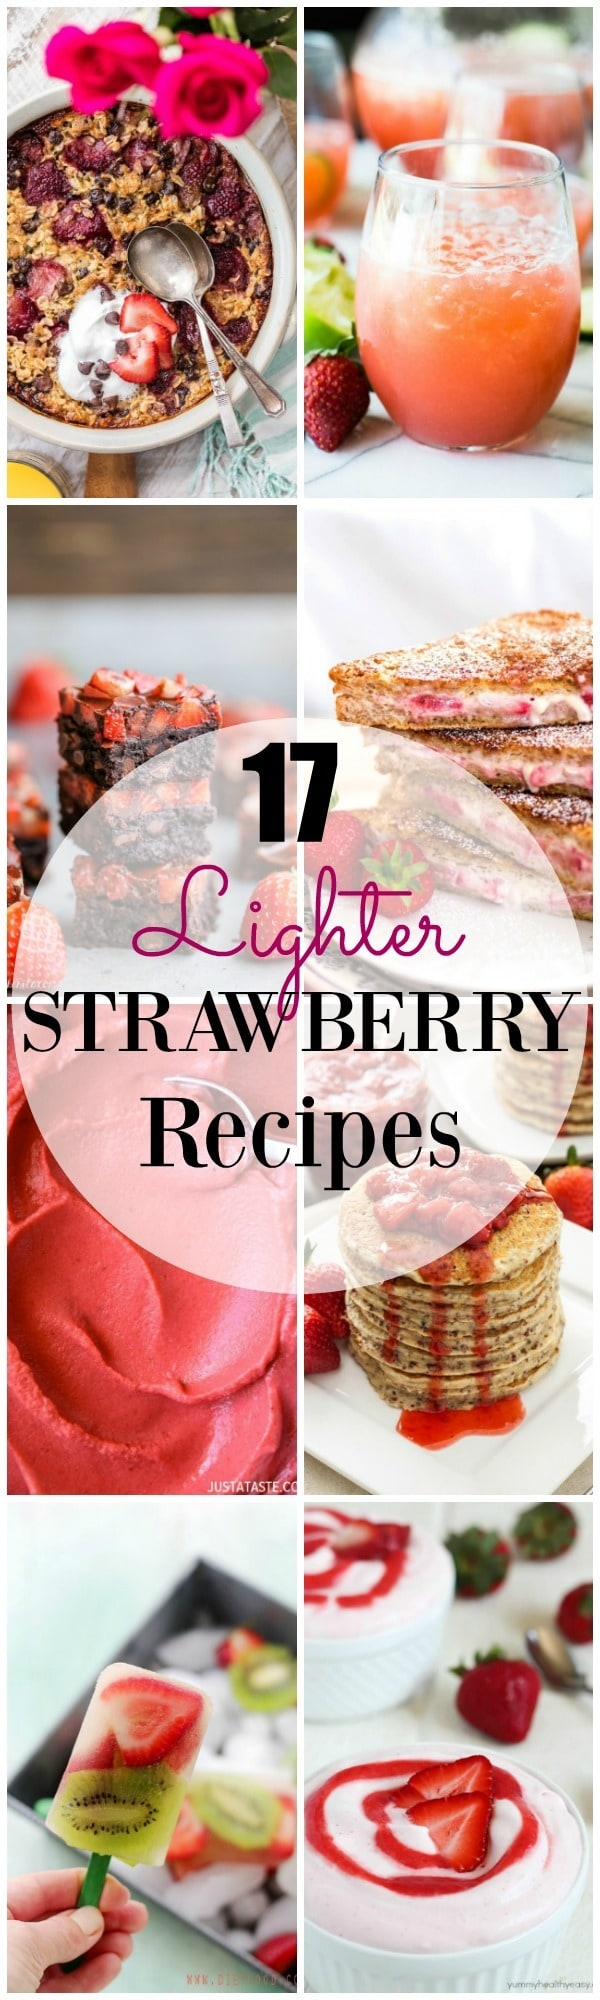 Strawberry recipes made lighter so that you can enjoy them guilt free!! Strawberry desserts make for the best summer desserts!